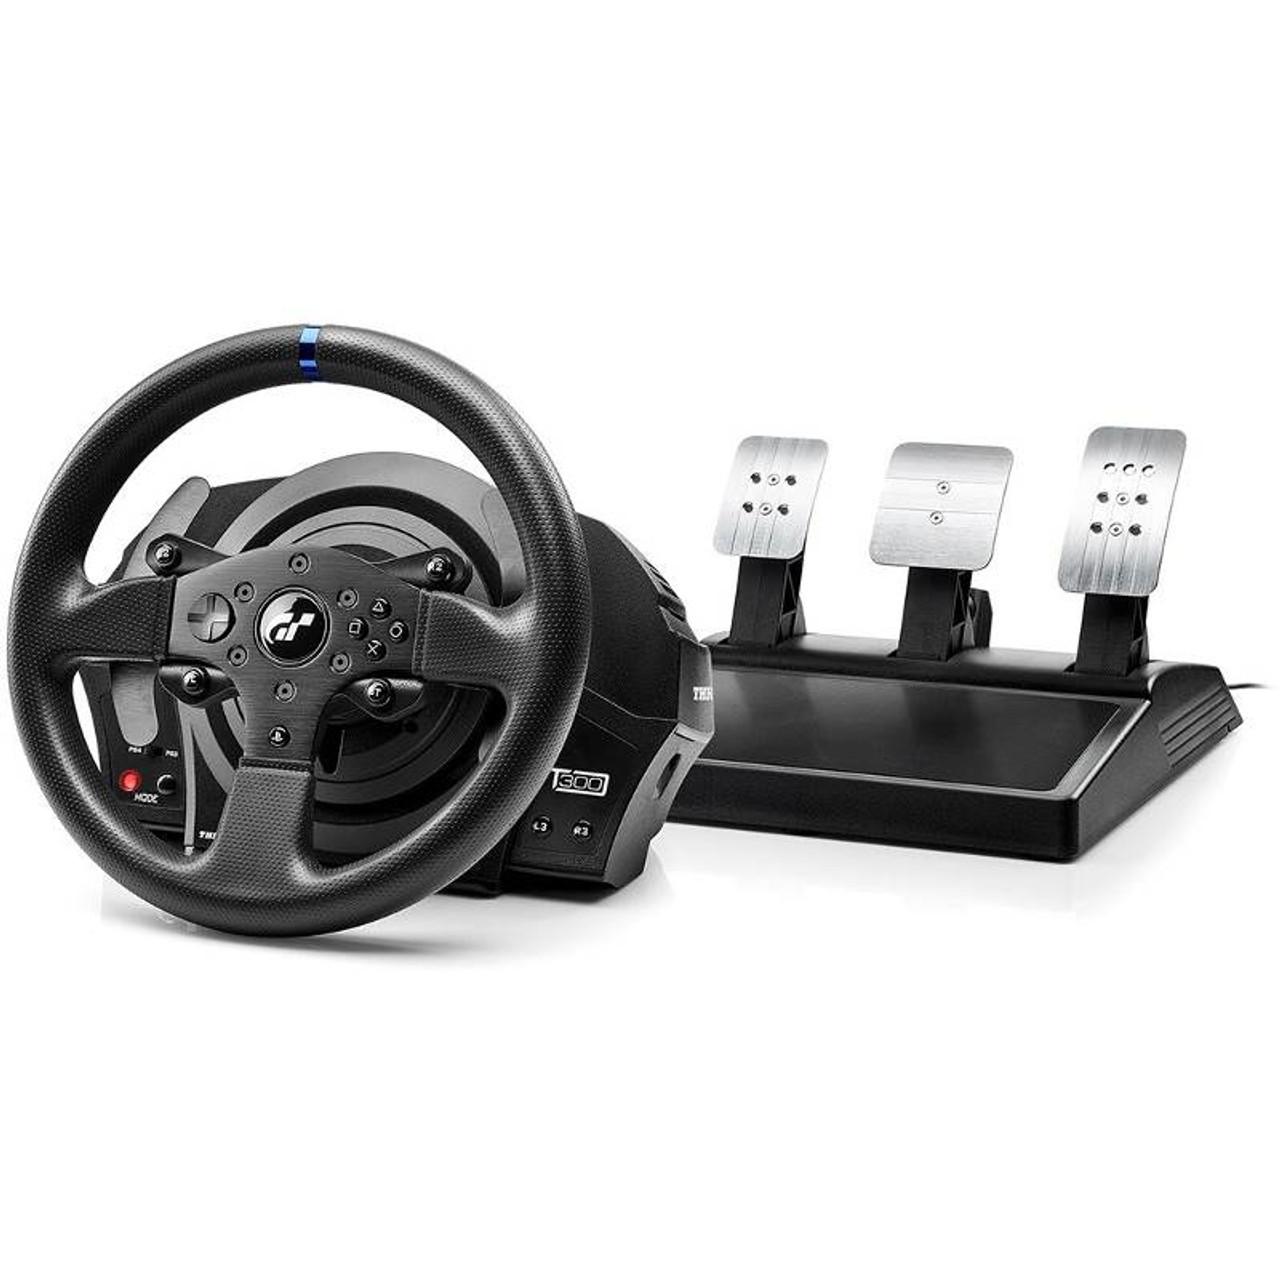 Product image for Thrustmaster T300 RS GT Racing Wheel | CX Computer Superstore